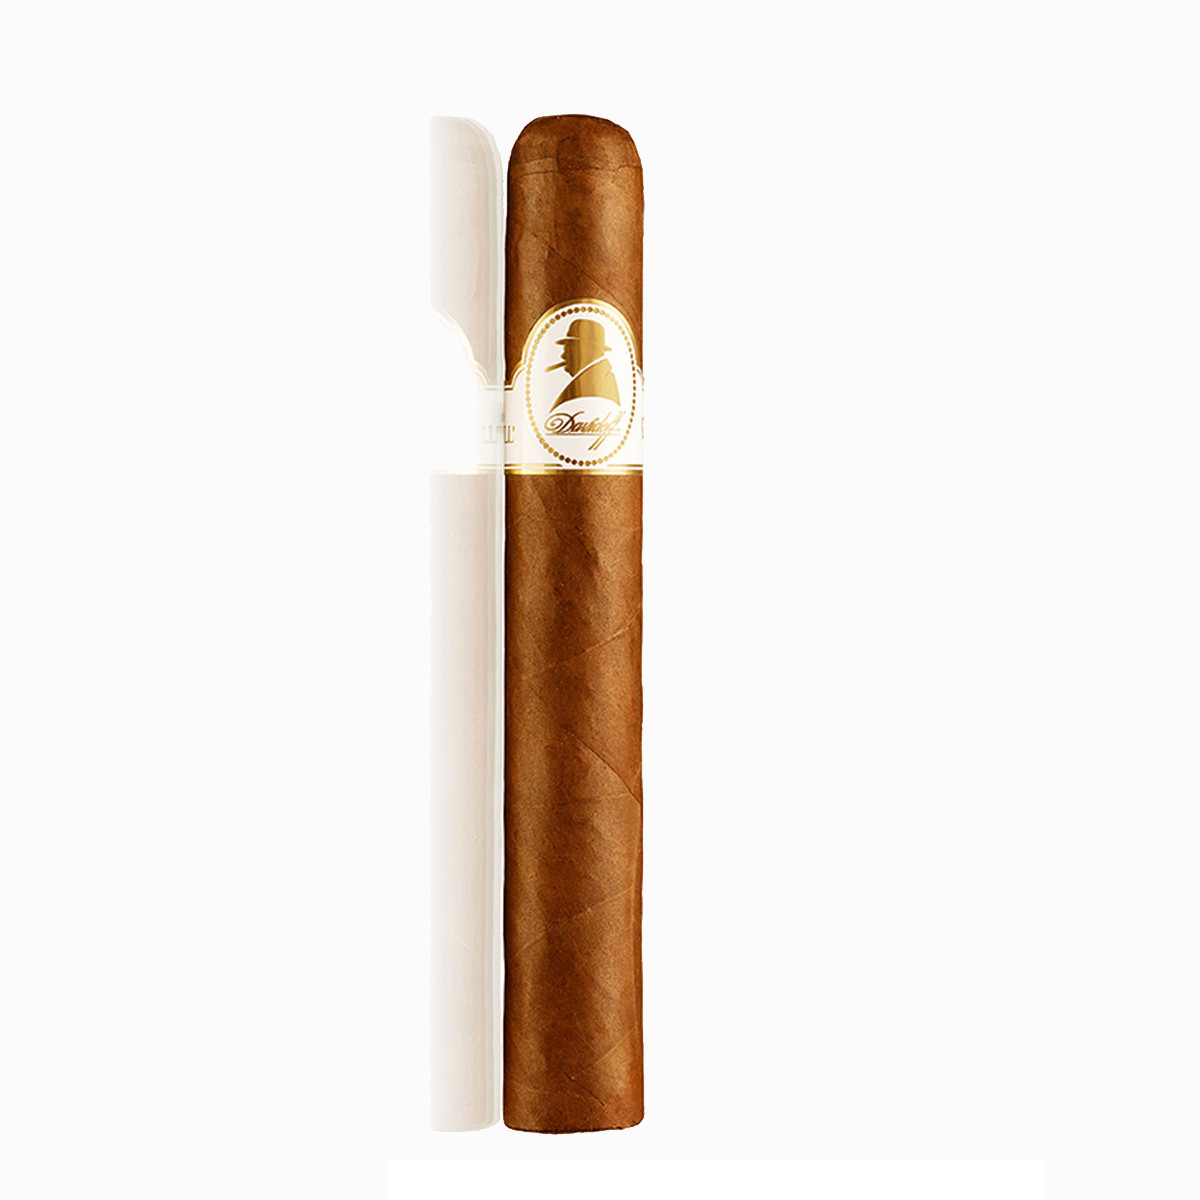 Davidoff Winston Churchill Toro (6x54 / Single)